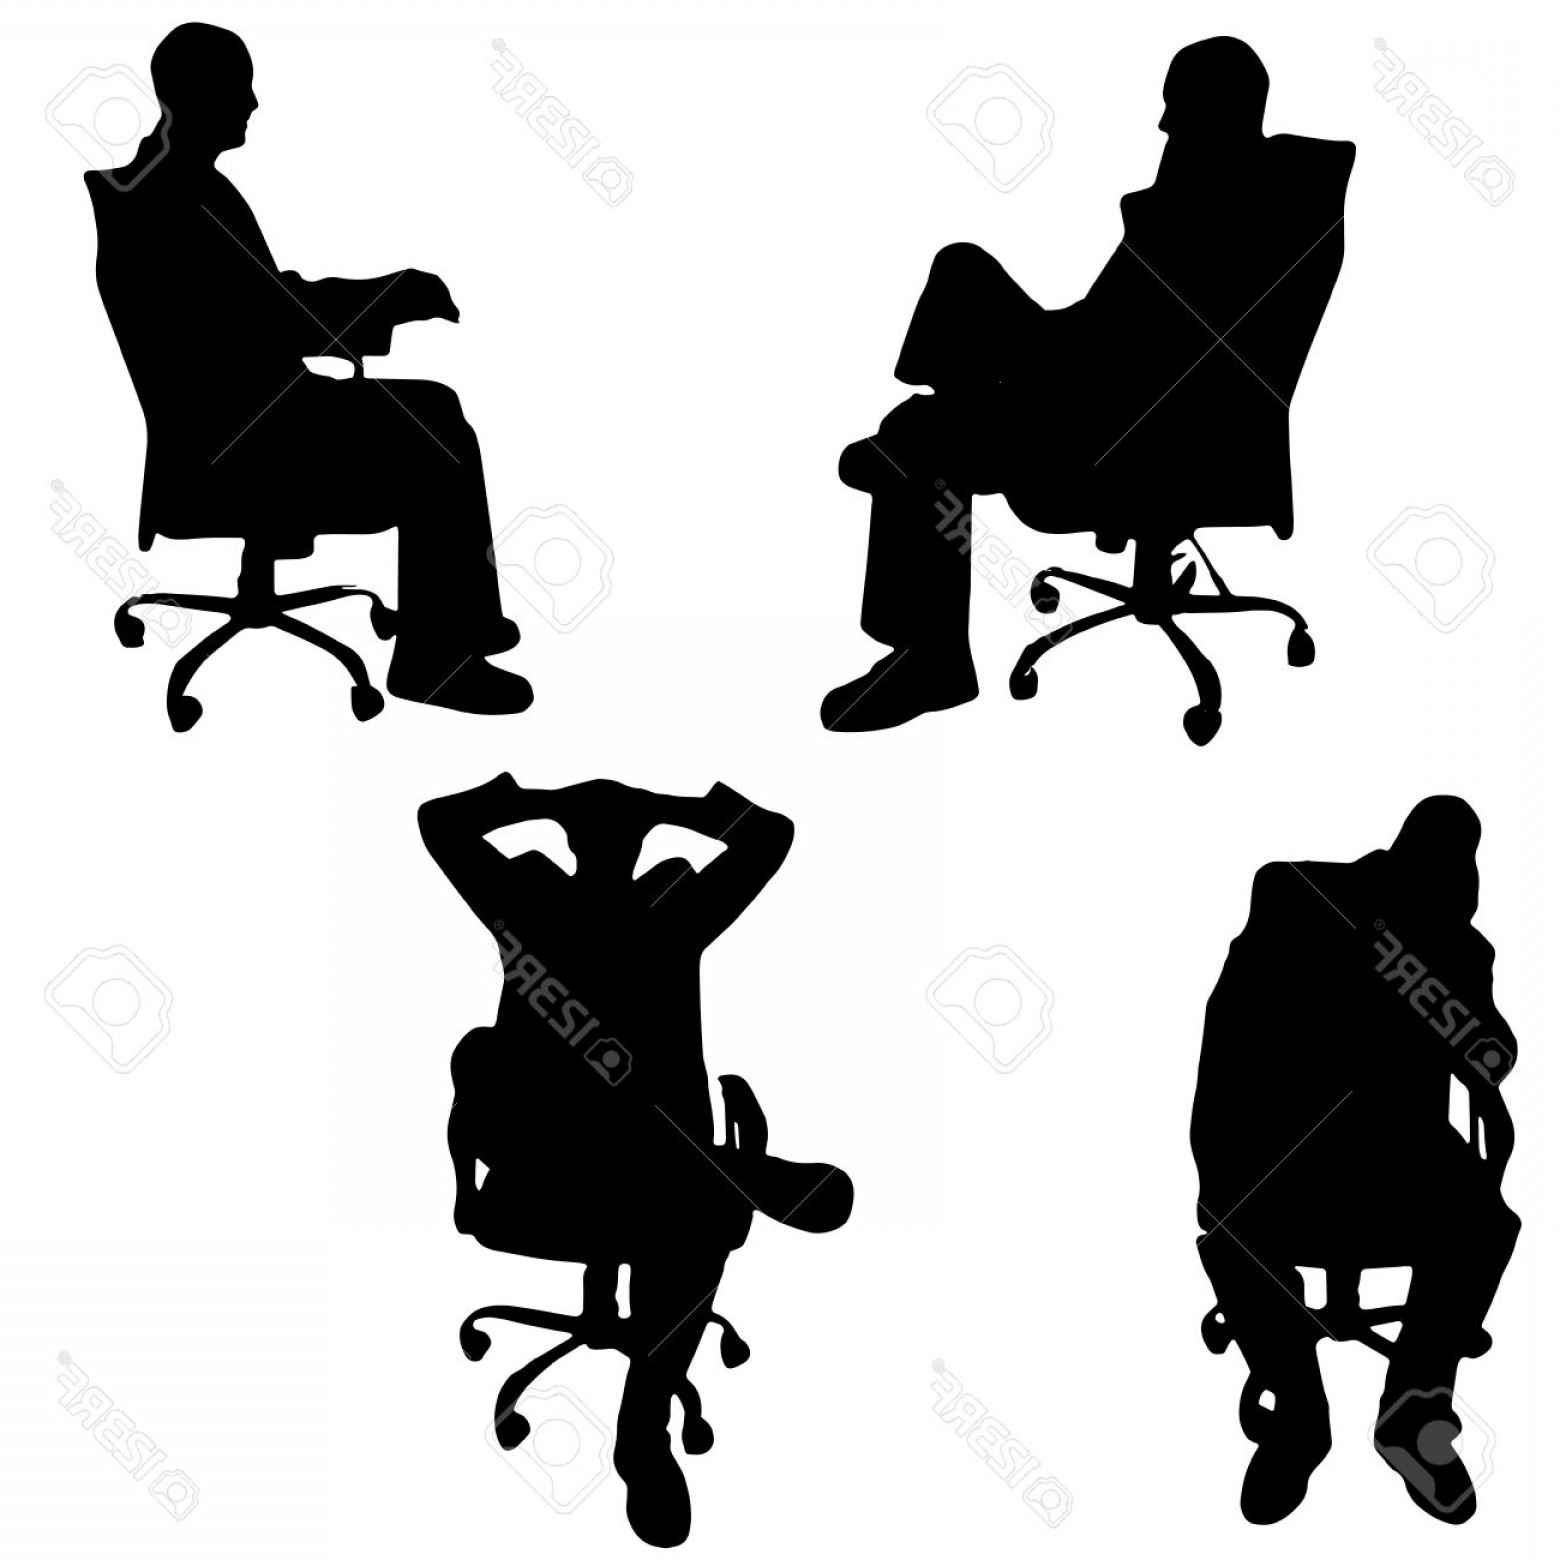 1560x1560 Photostock Vector Vector Silhouette Of A Man Sitting In The Office